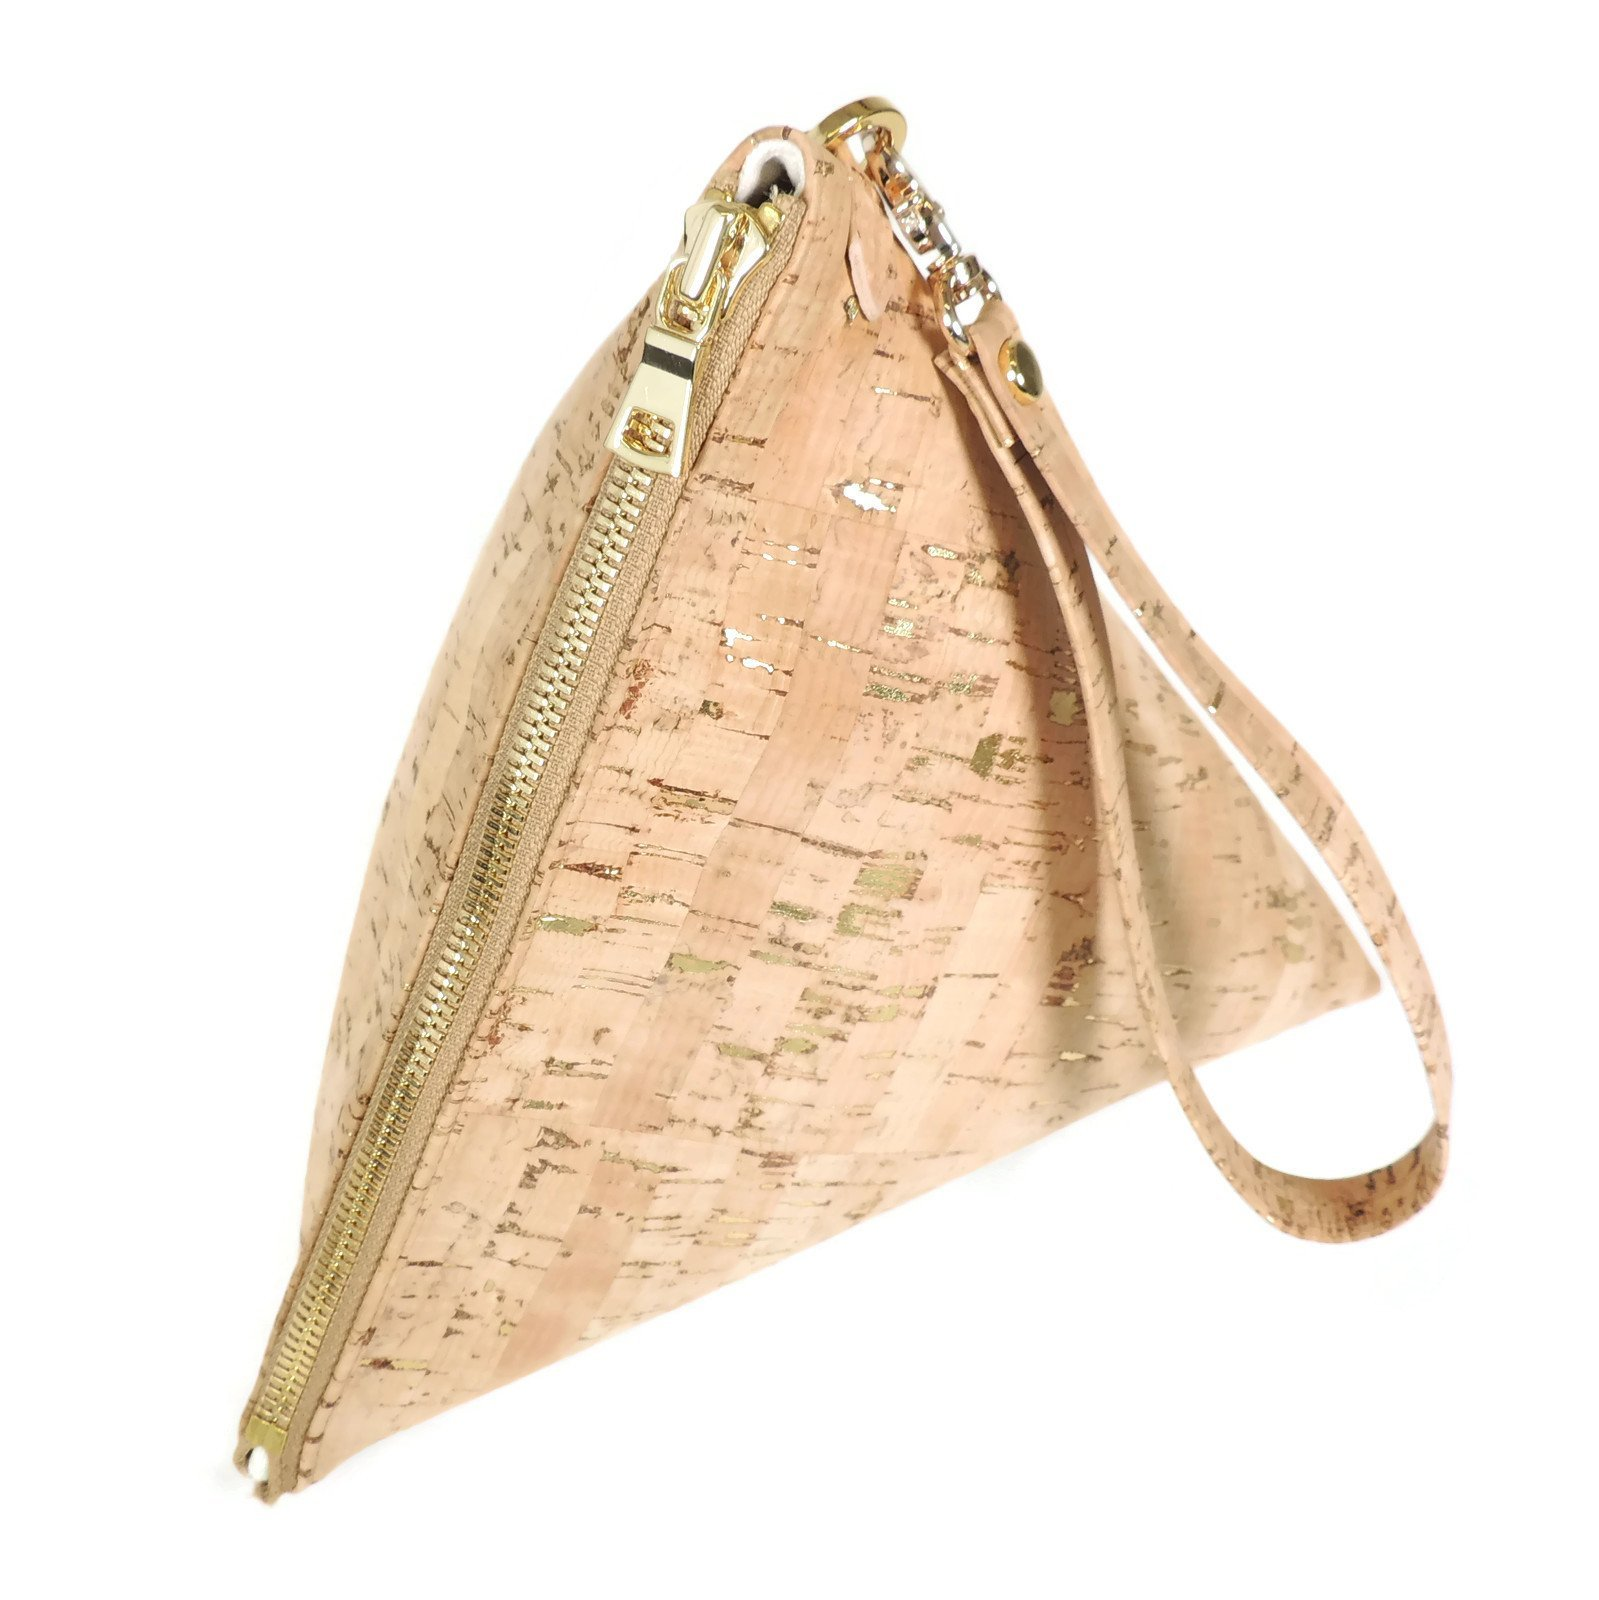 Large Vegan Triangle Clutch Purse in Cork with Gold Flecks by SPICER BAGS